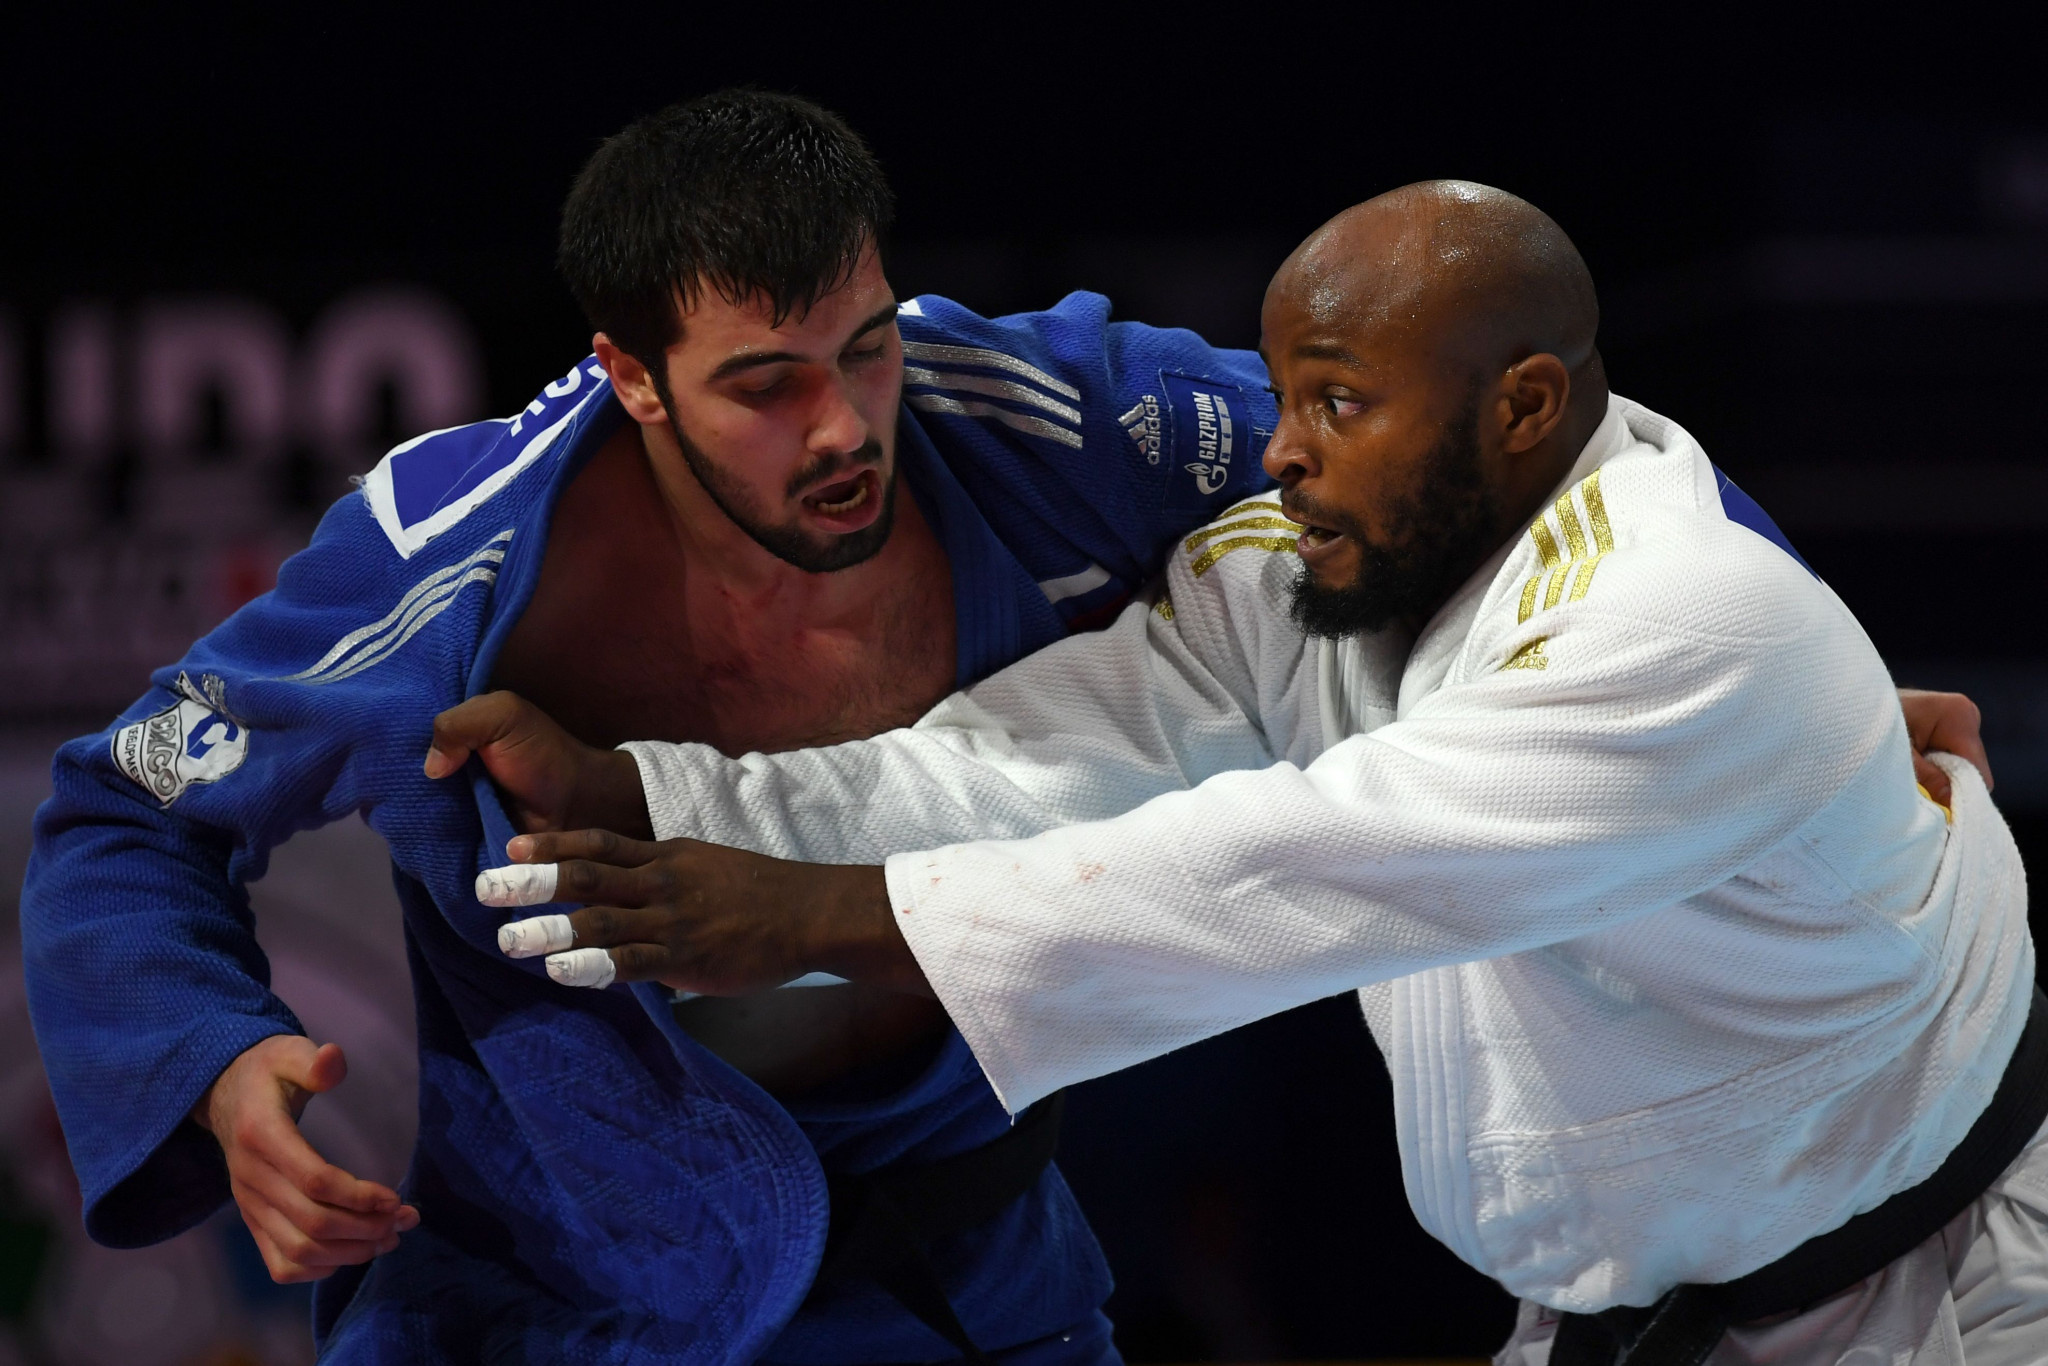 Jorge Fonseca, right, will be the favourite in the men's 100kg as the reigning world champion ©Getty Images